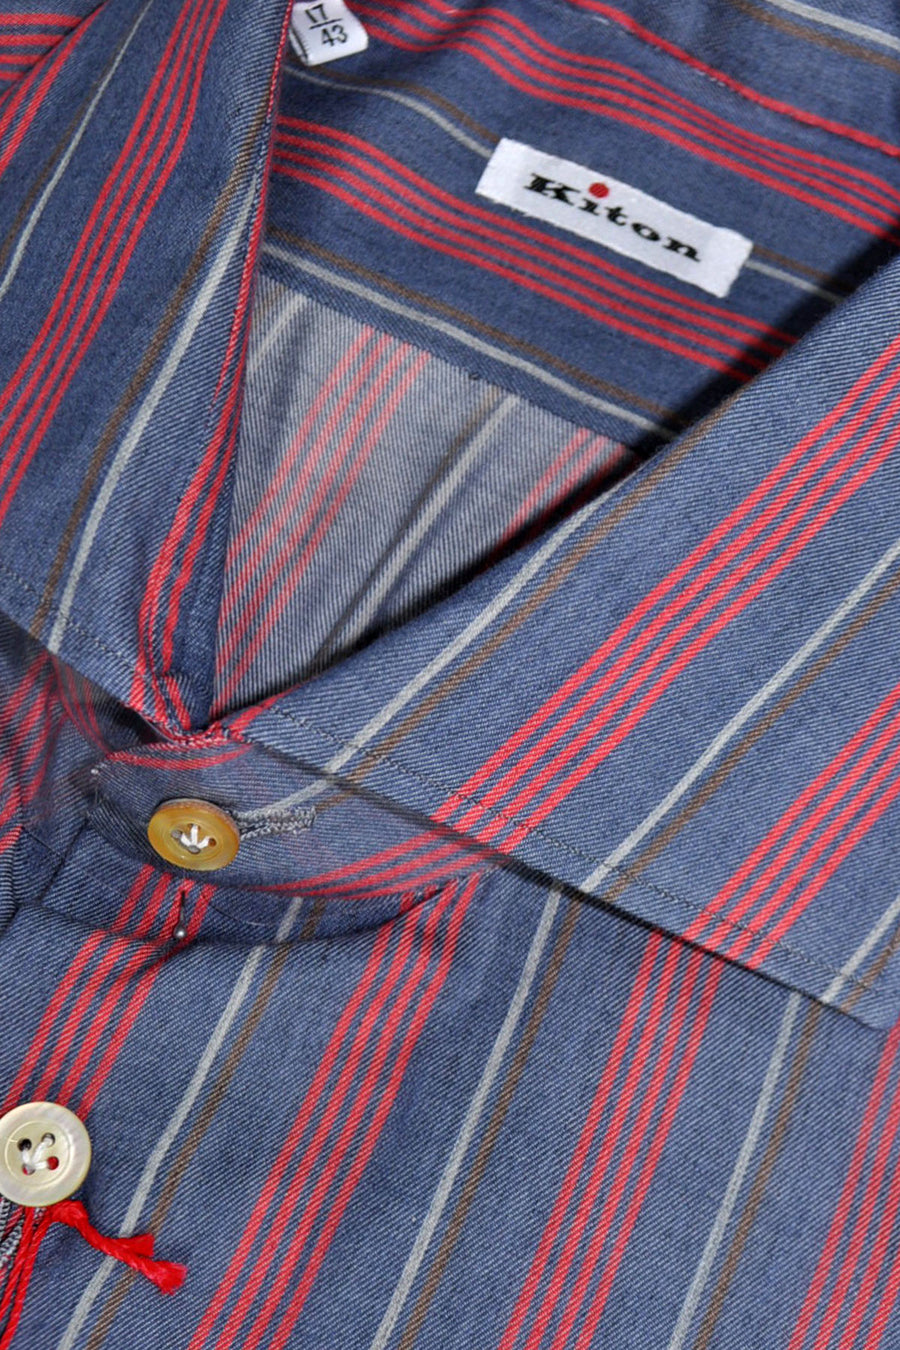 Kiton Dress Shirt Navy Red Stripes Cotton Cashmere